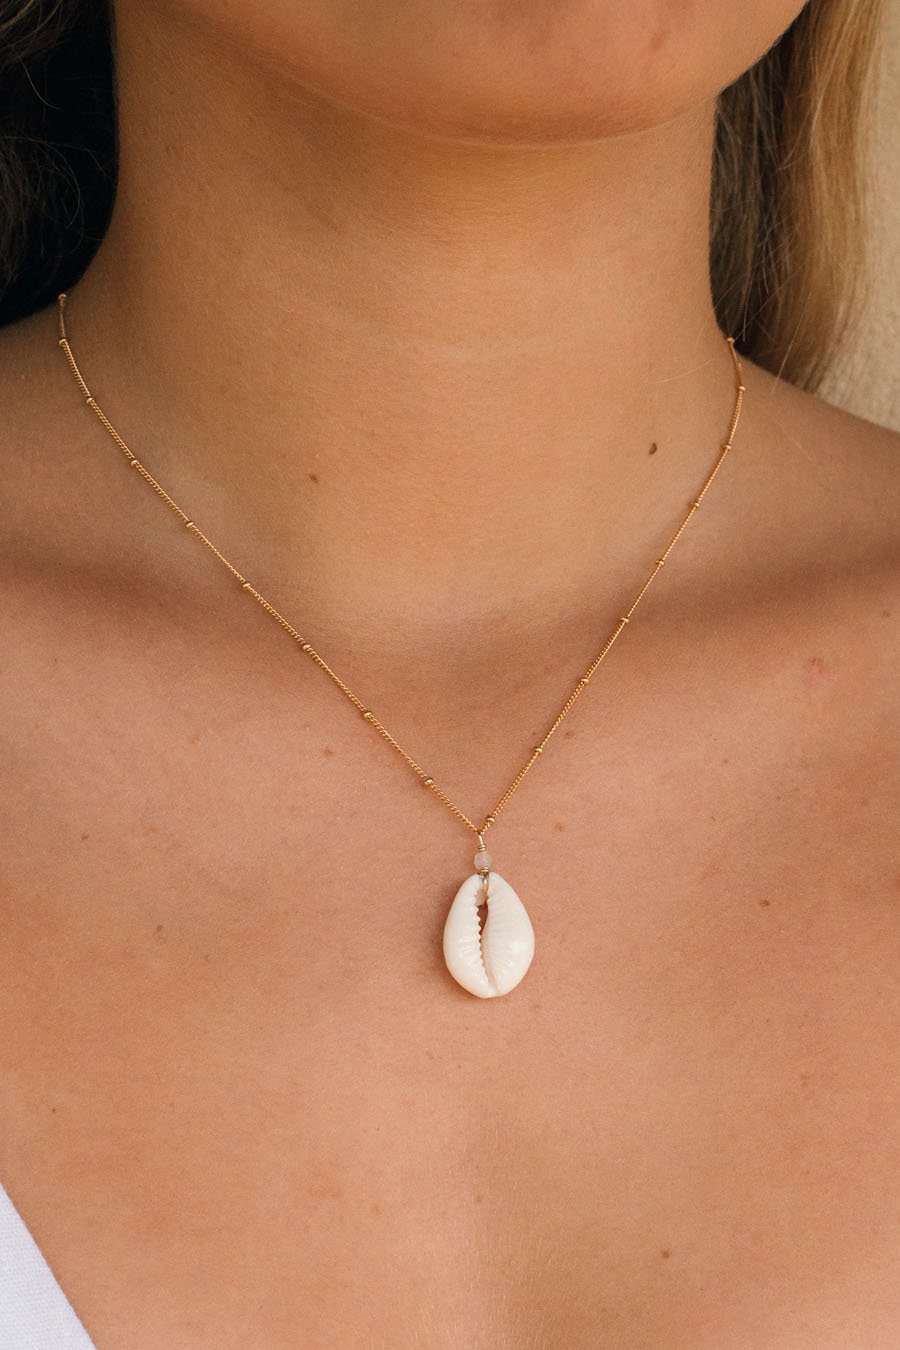 Gold Fill Cowrie Satellite Necklace, Necklace with  by Lunarsea Designs